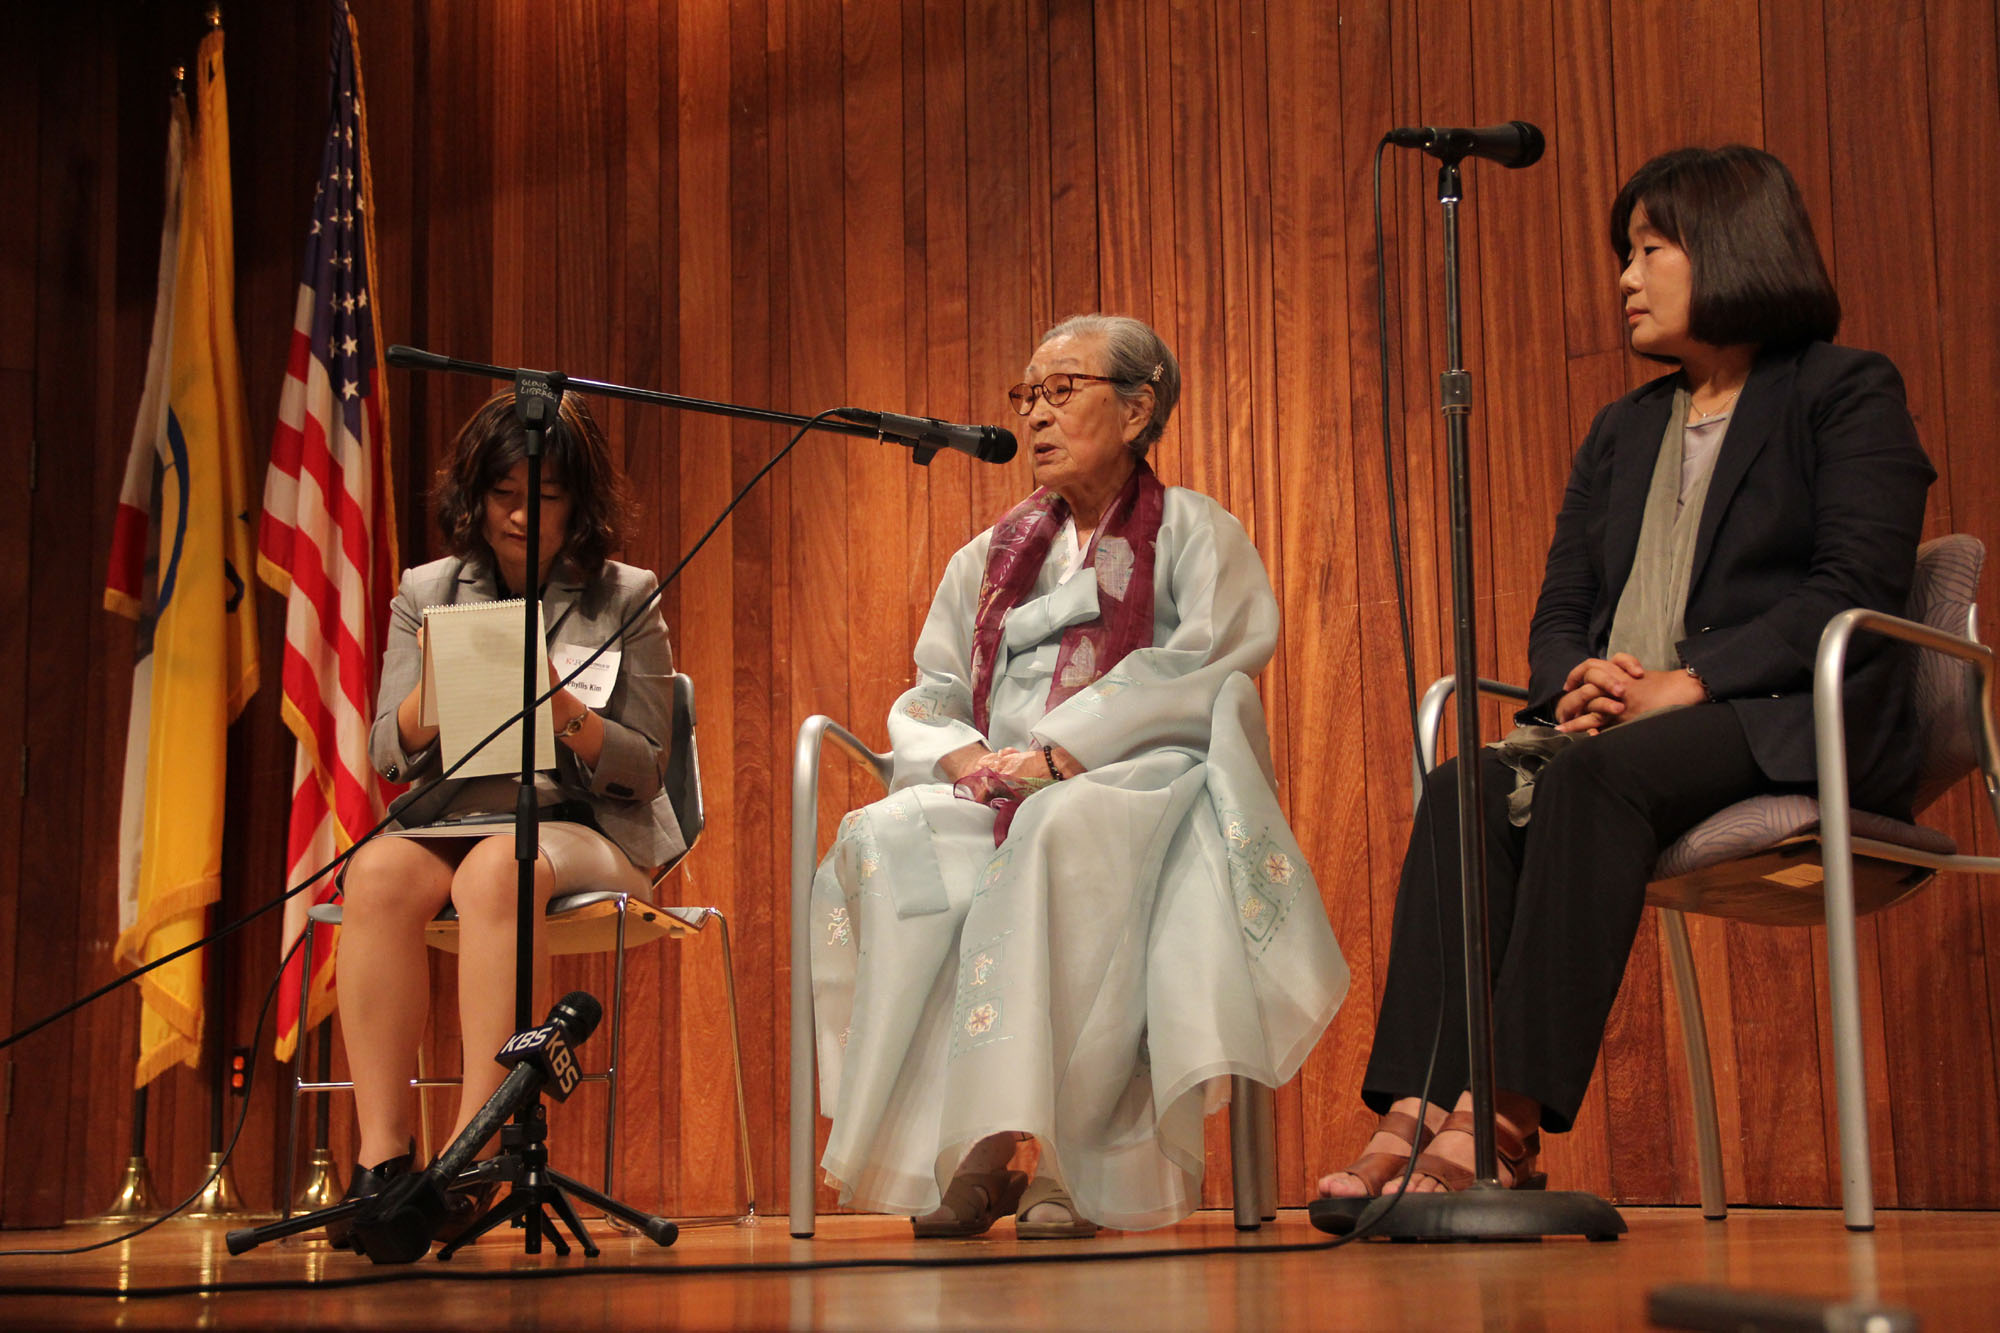 Still awaiting liberation: Kim Bok Dong, 86, who was forced to work as a sex slave for the Imperial Japanese Army at age 14, addresses an event Monday in Glendale, California. | KYODO